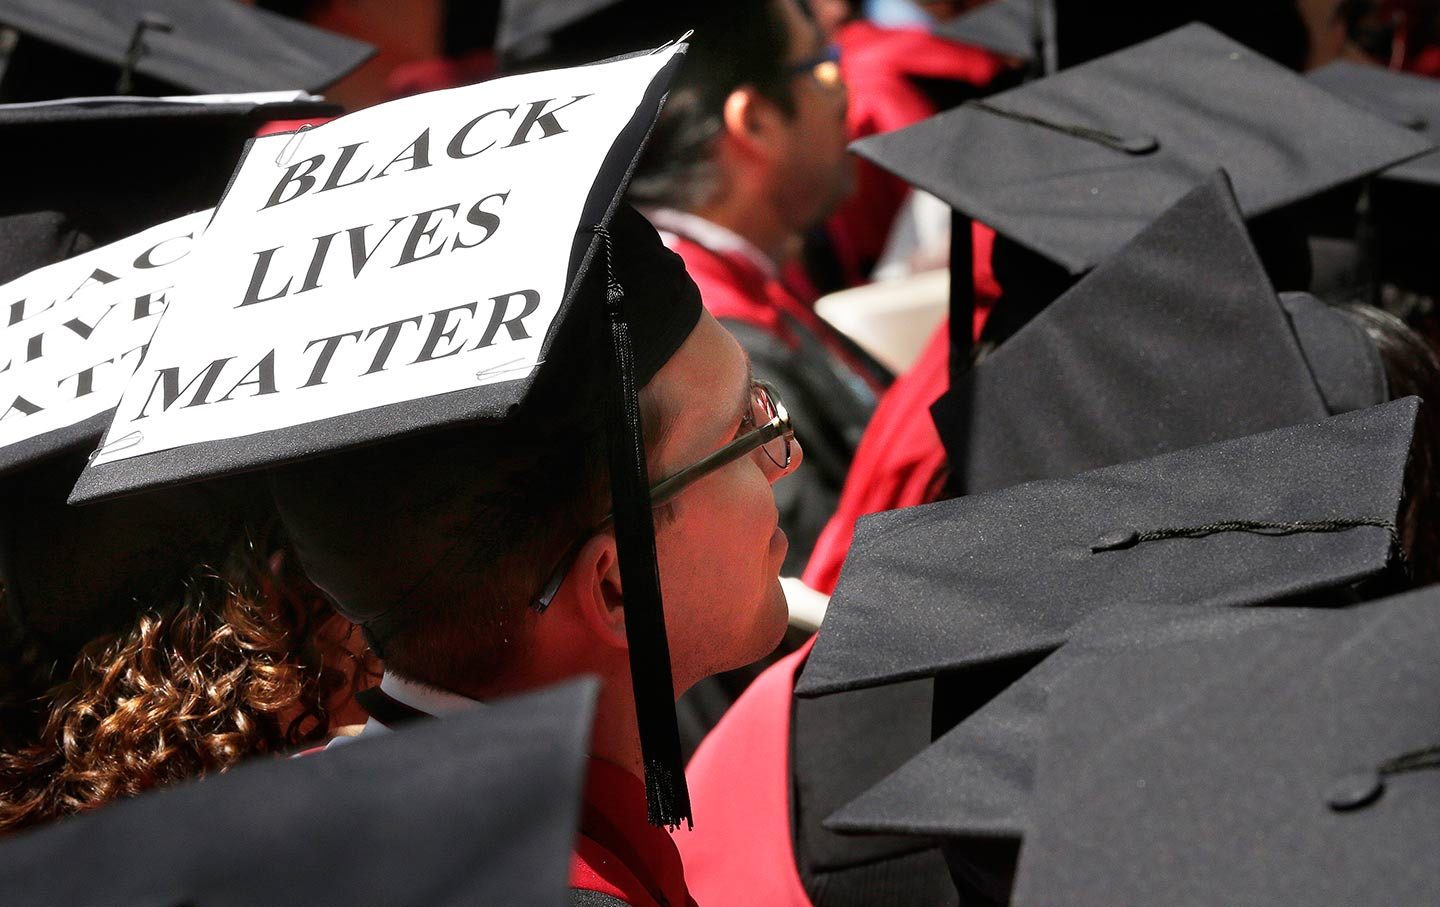 A Graduate Student Of Harvard Law School Displays The Message Black Lives Matter On His Mortarboard During University Commencement Exercises